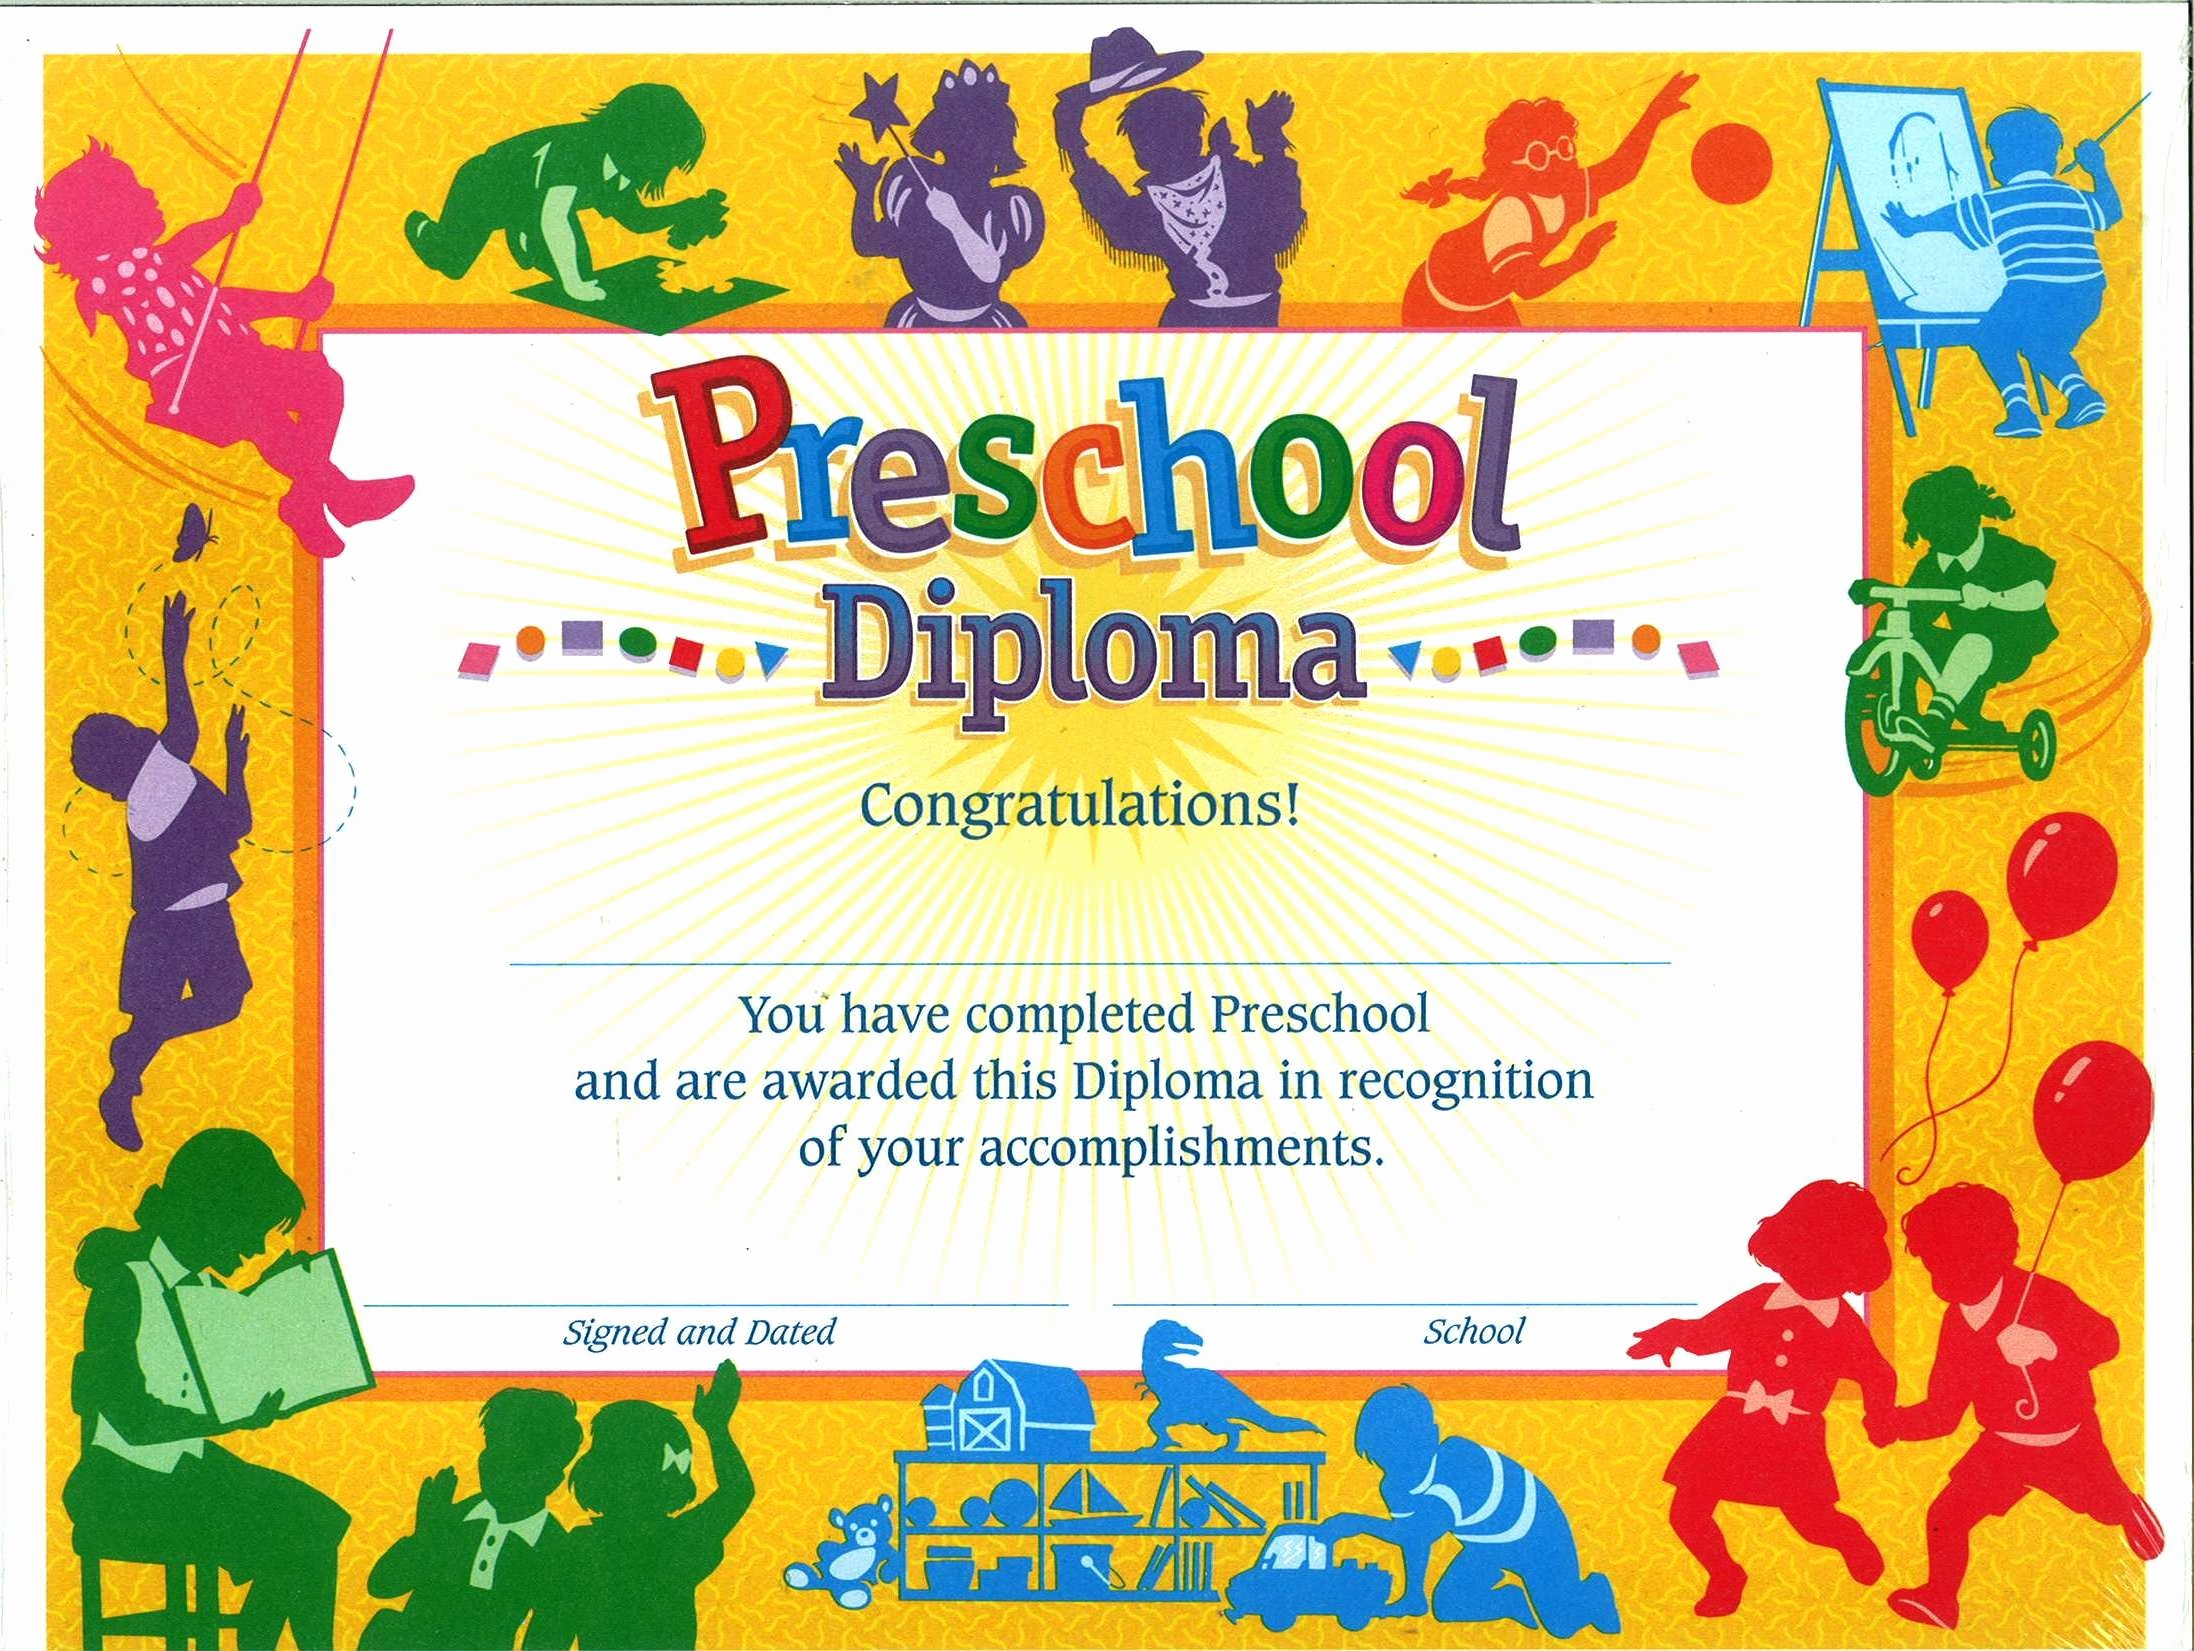 Preschool Graduation Certificate Templates Free Awesome 11 Preschool Certificate Templates Pdf